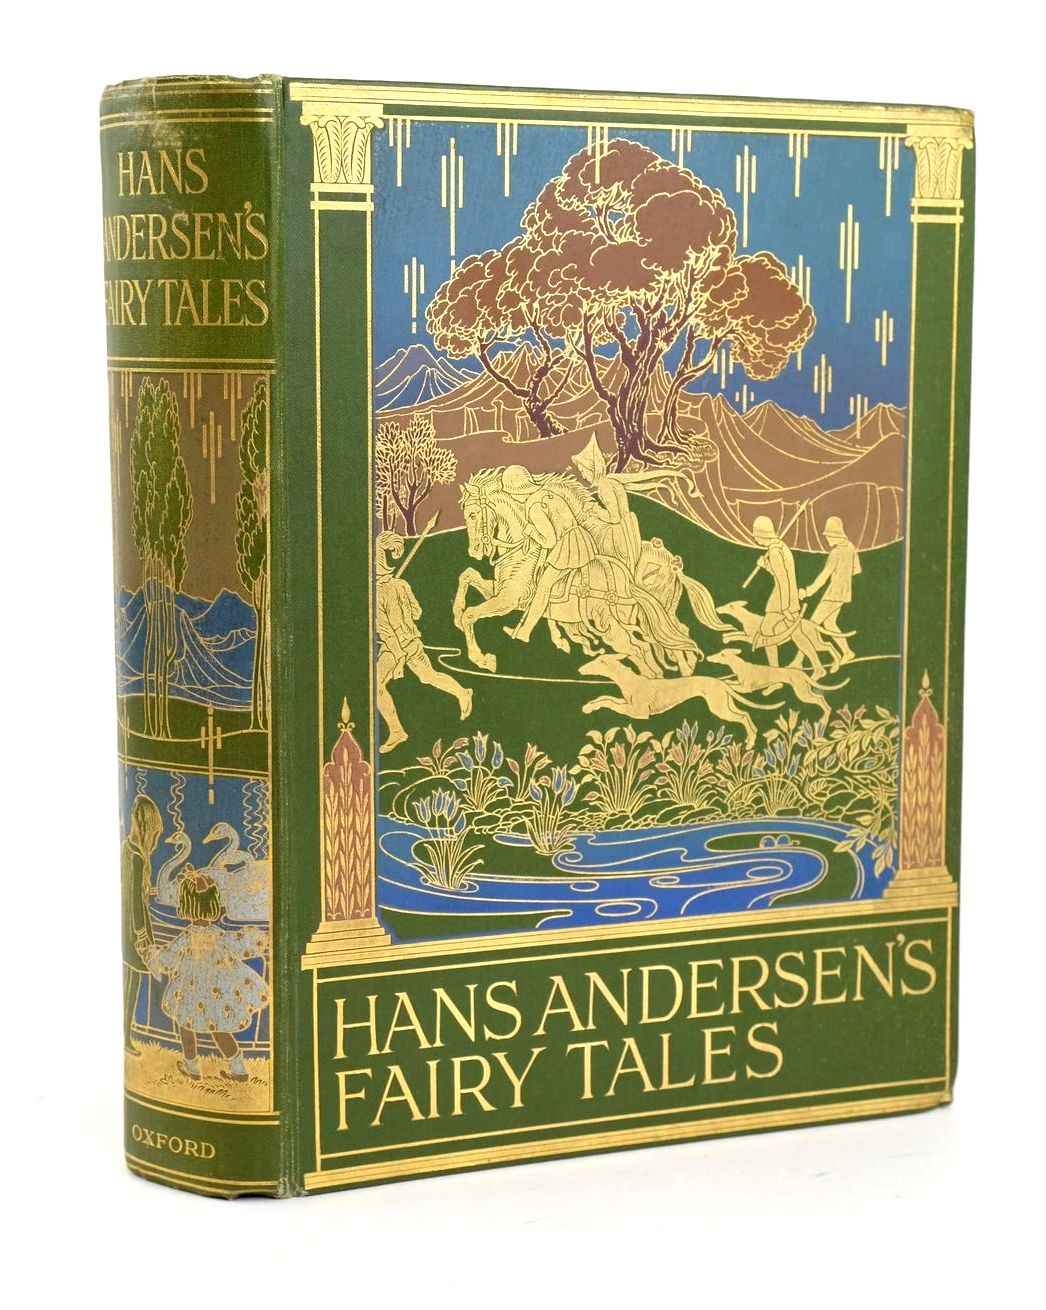 Photo of HANS ANDERSEN'S FAIRY TALES written by Andersen, Hans Christian illustrated by Cramer, Rie Govey, Lilian A. published by Oxford University Press, Humphrey Milford (STOCK CODE: 1319024)  for sale by Stella & Rose's Books